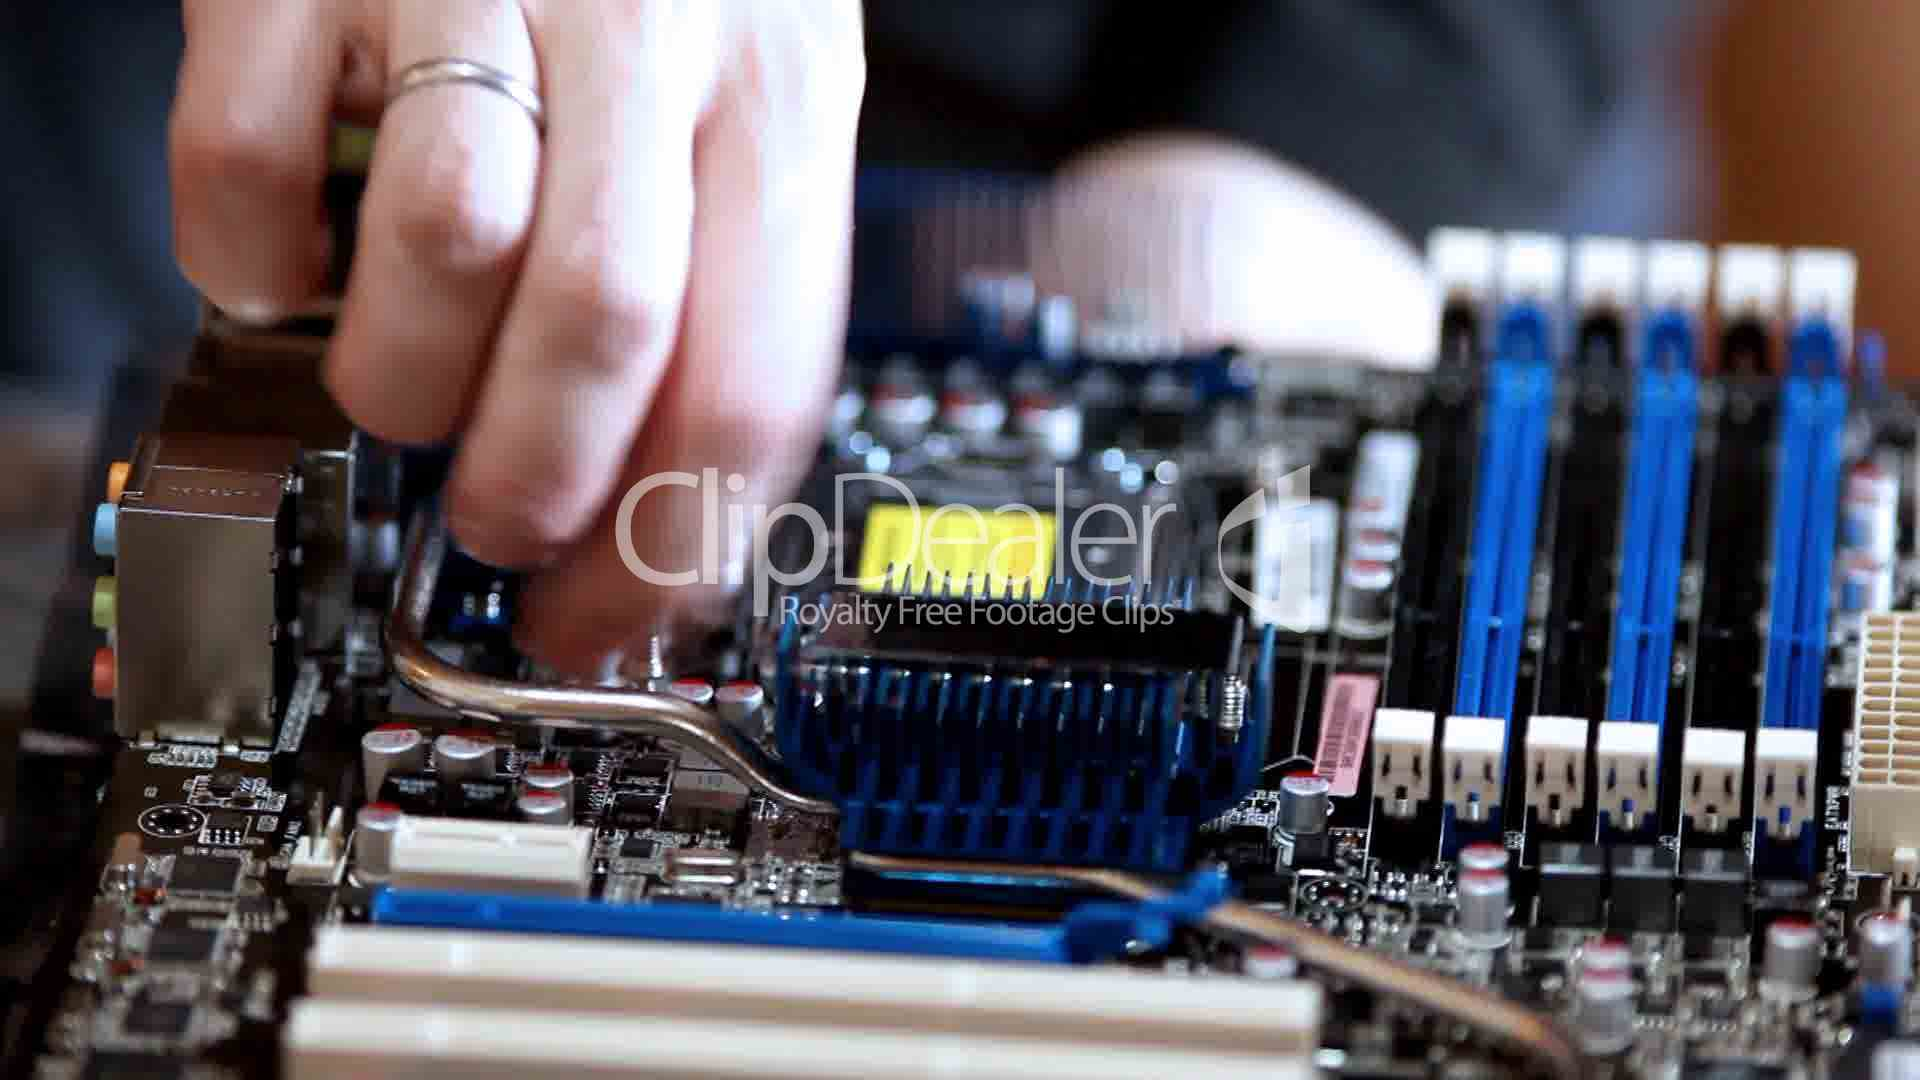 Assembly Computer Fix Screw Royalty Free Video And Stock Footage Electronic Circuit Boards Image Clips